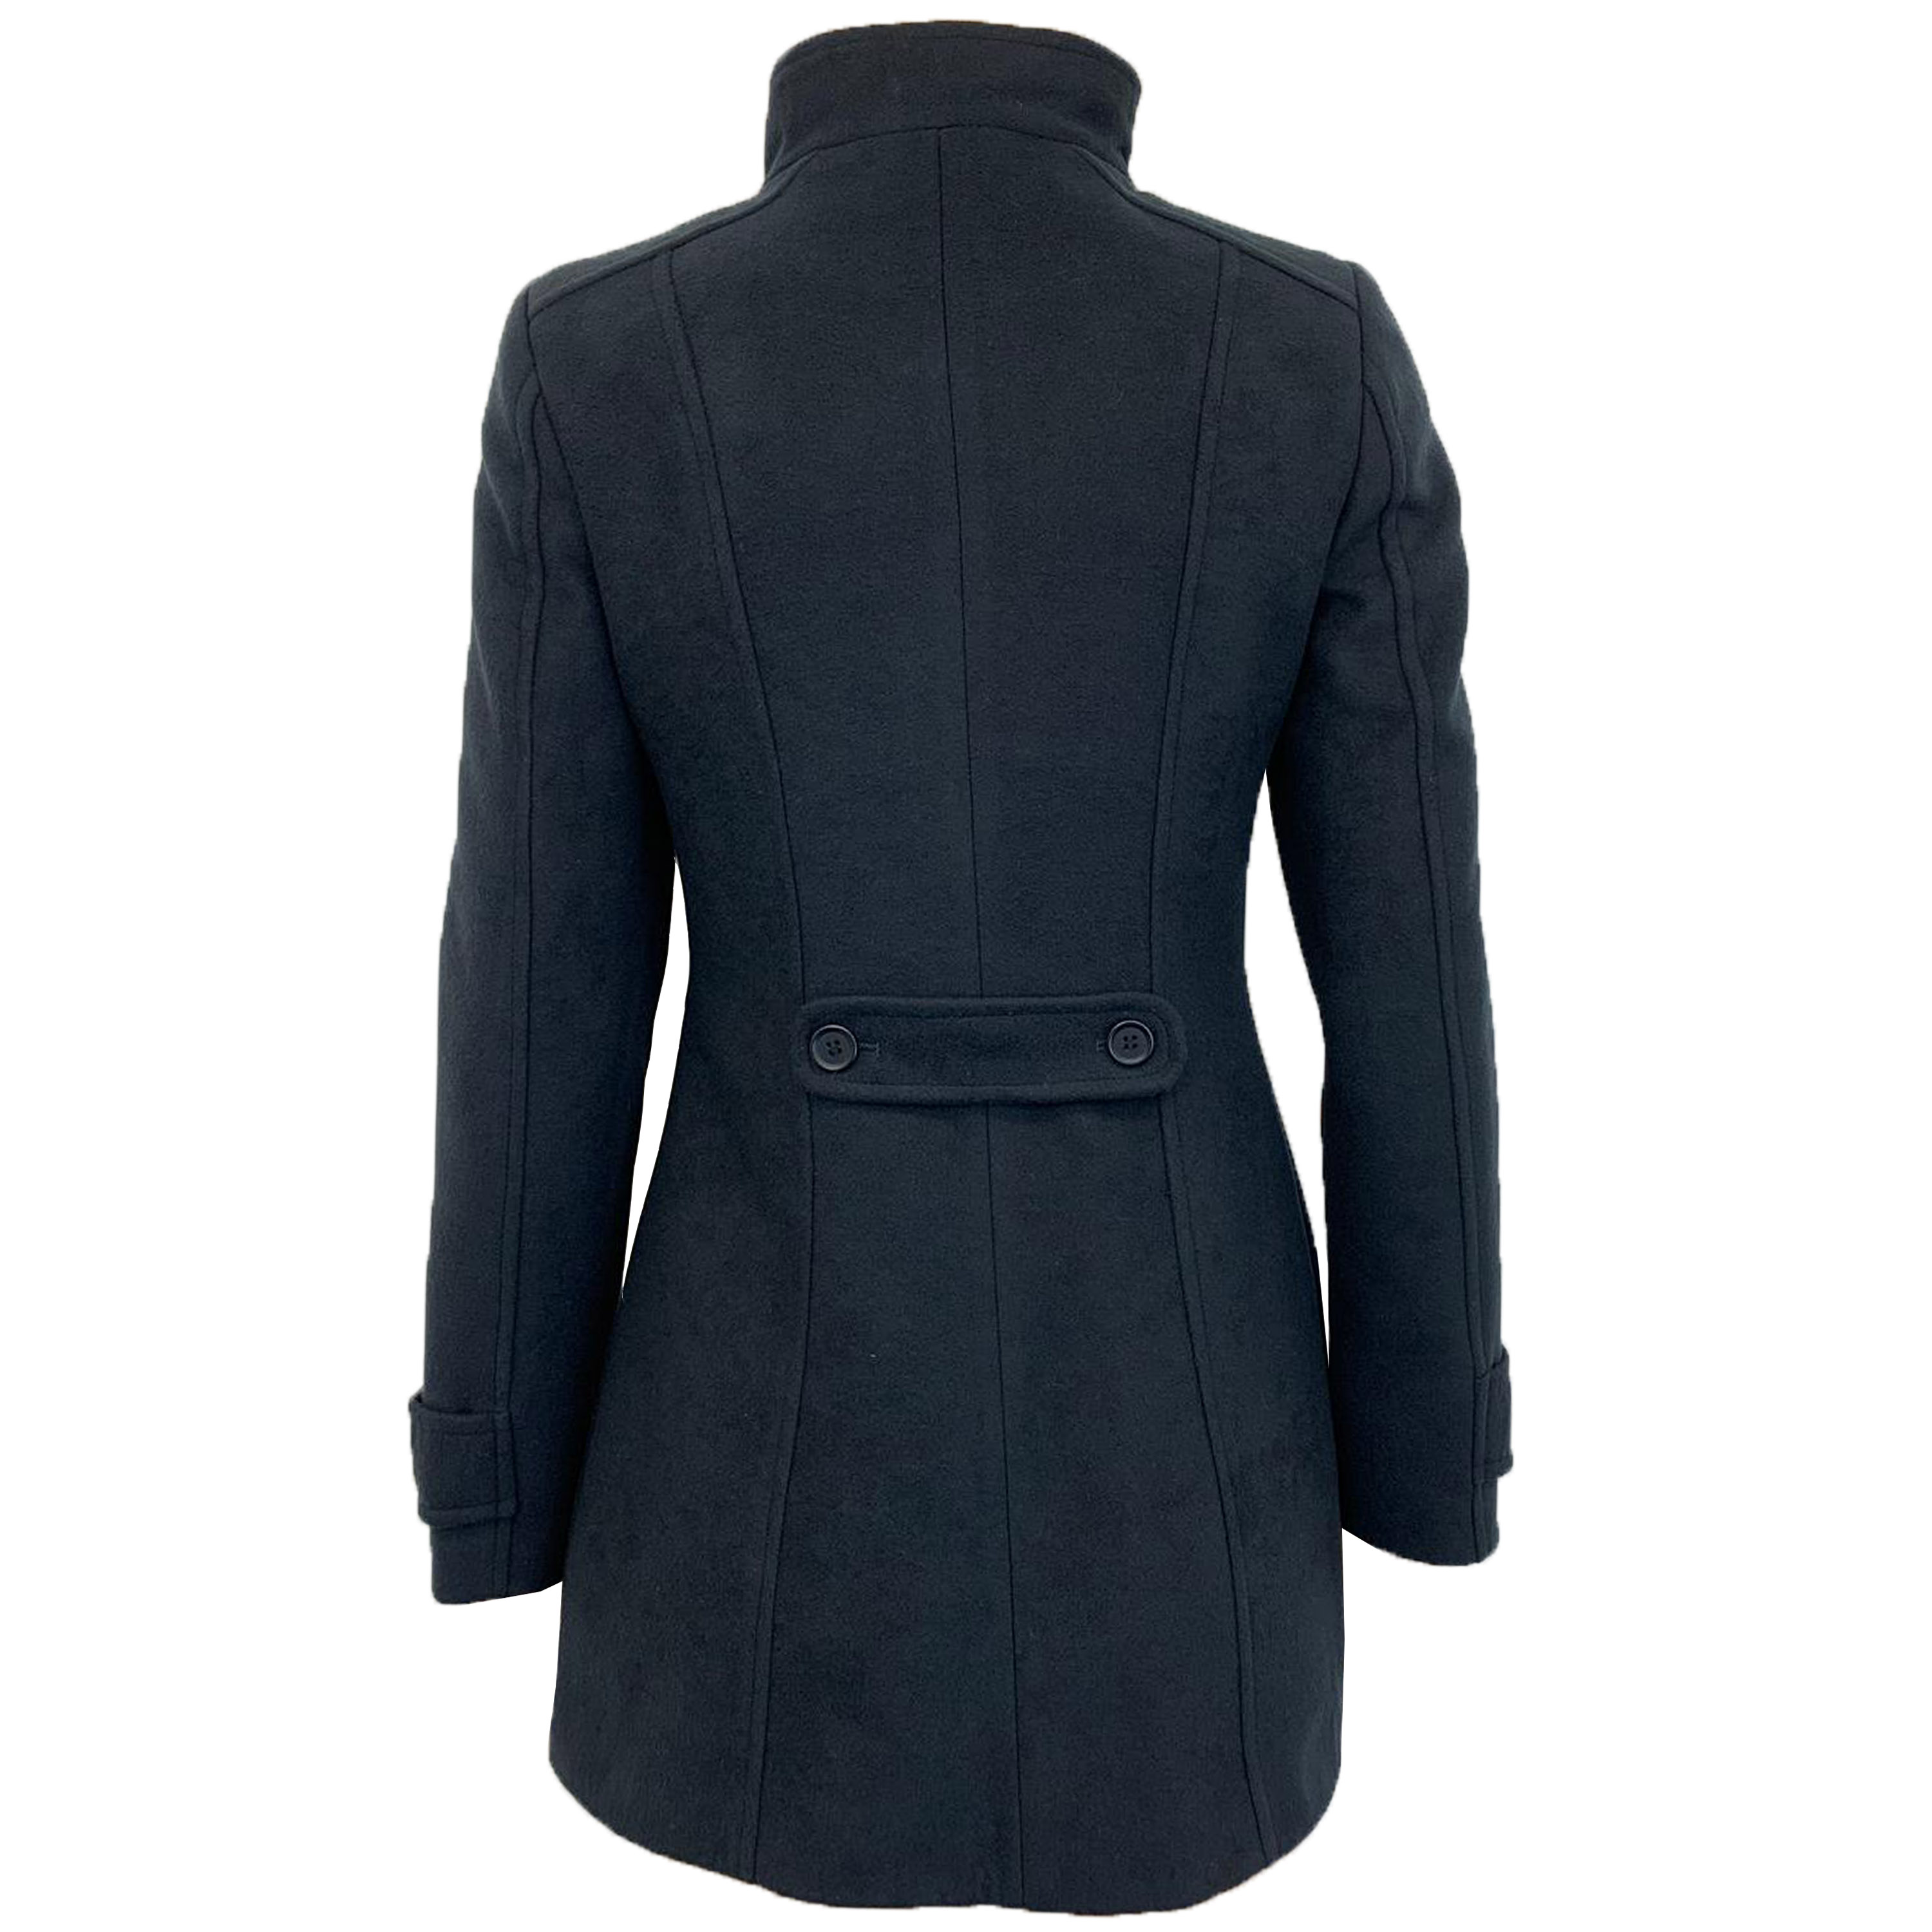 Ladies Coat Womens Double Breasted Jacket Wool Look Button Fashion Cashmere New